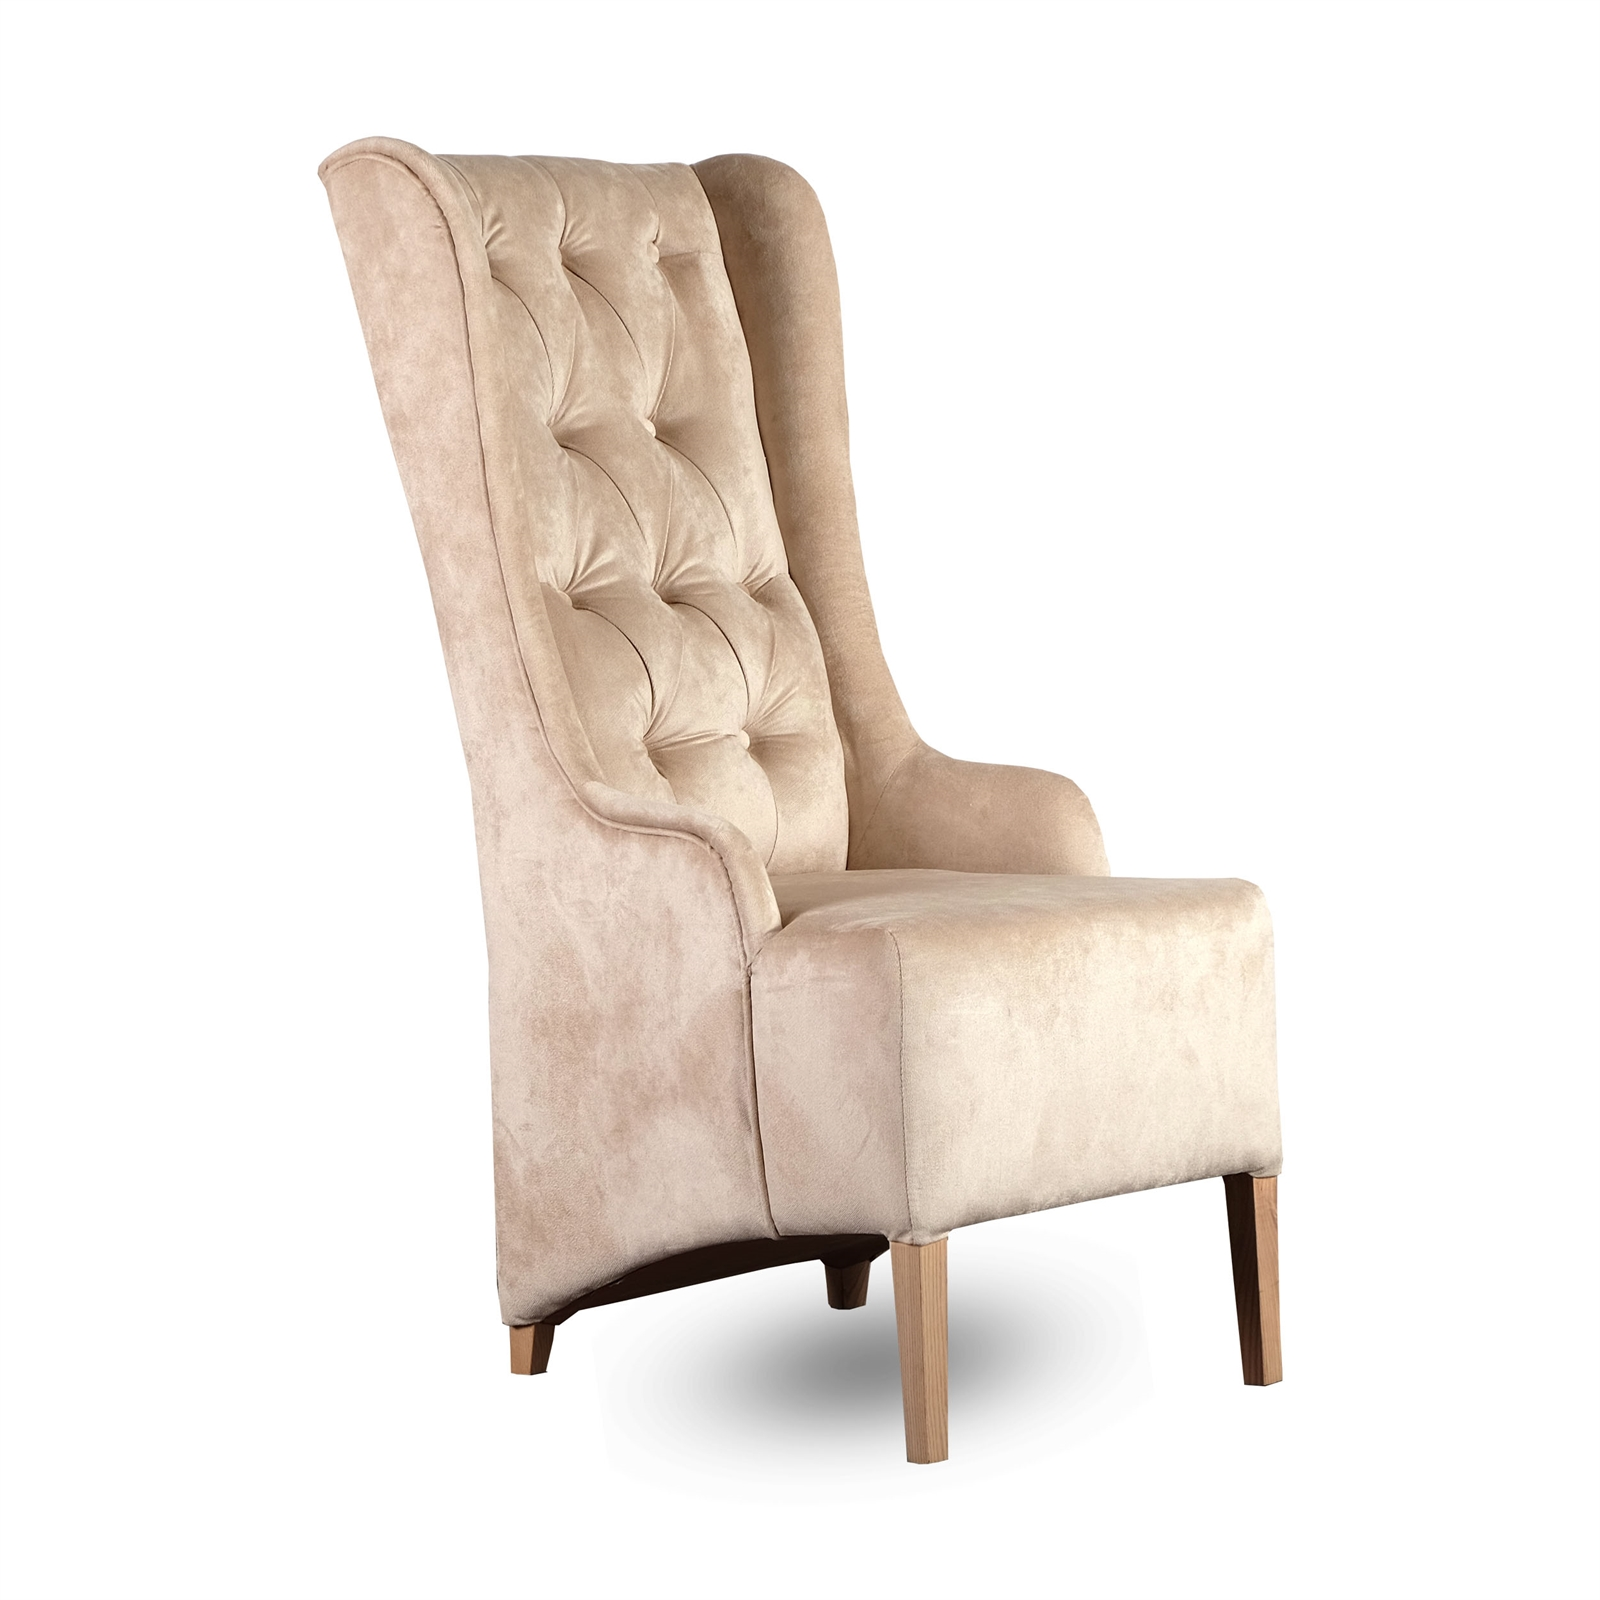 chair cover king york on ak racing padded design quotnew quot velvet beige